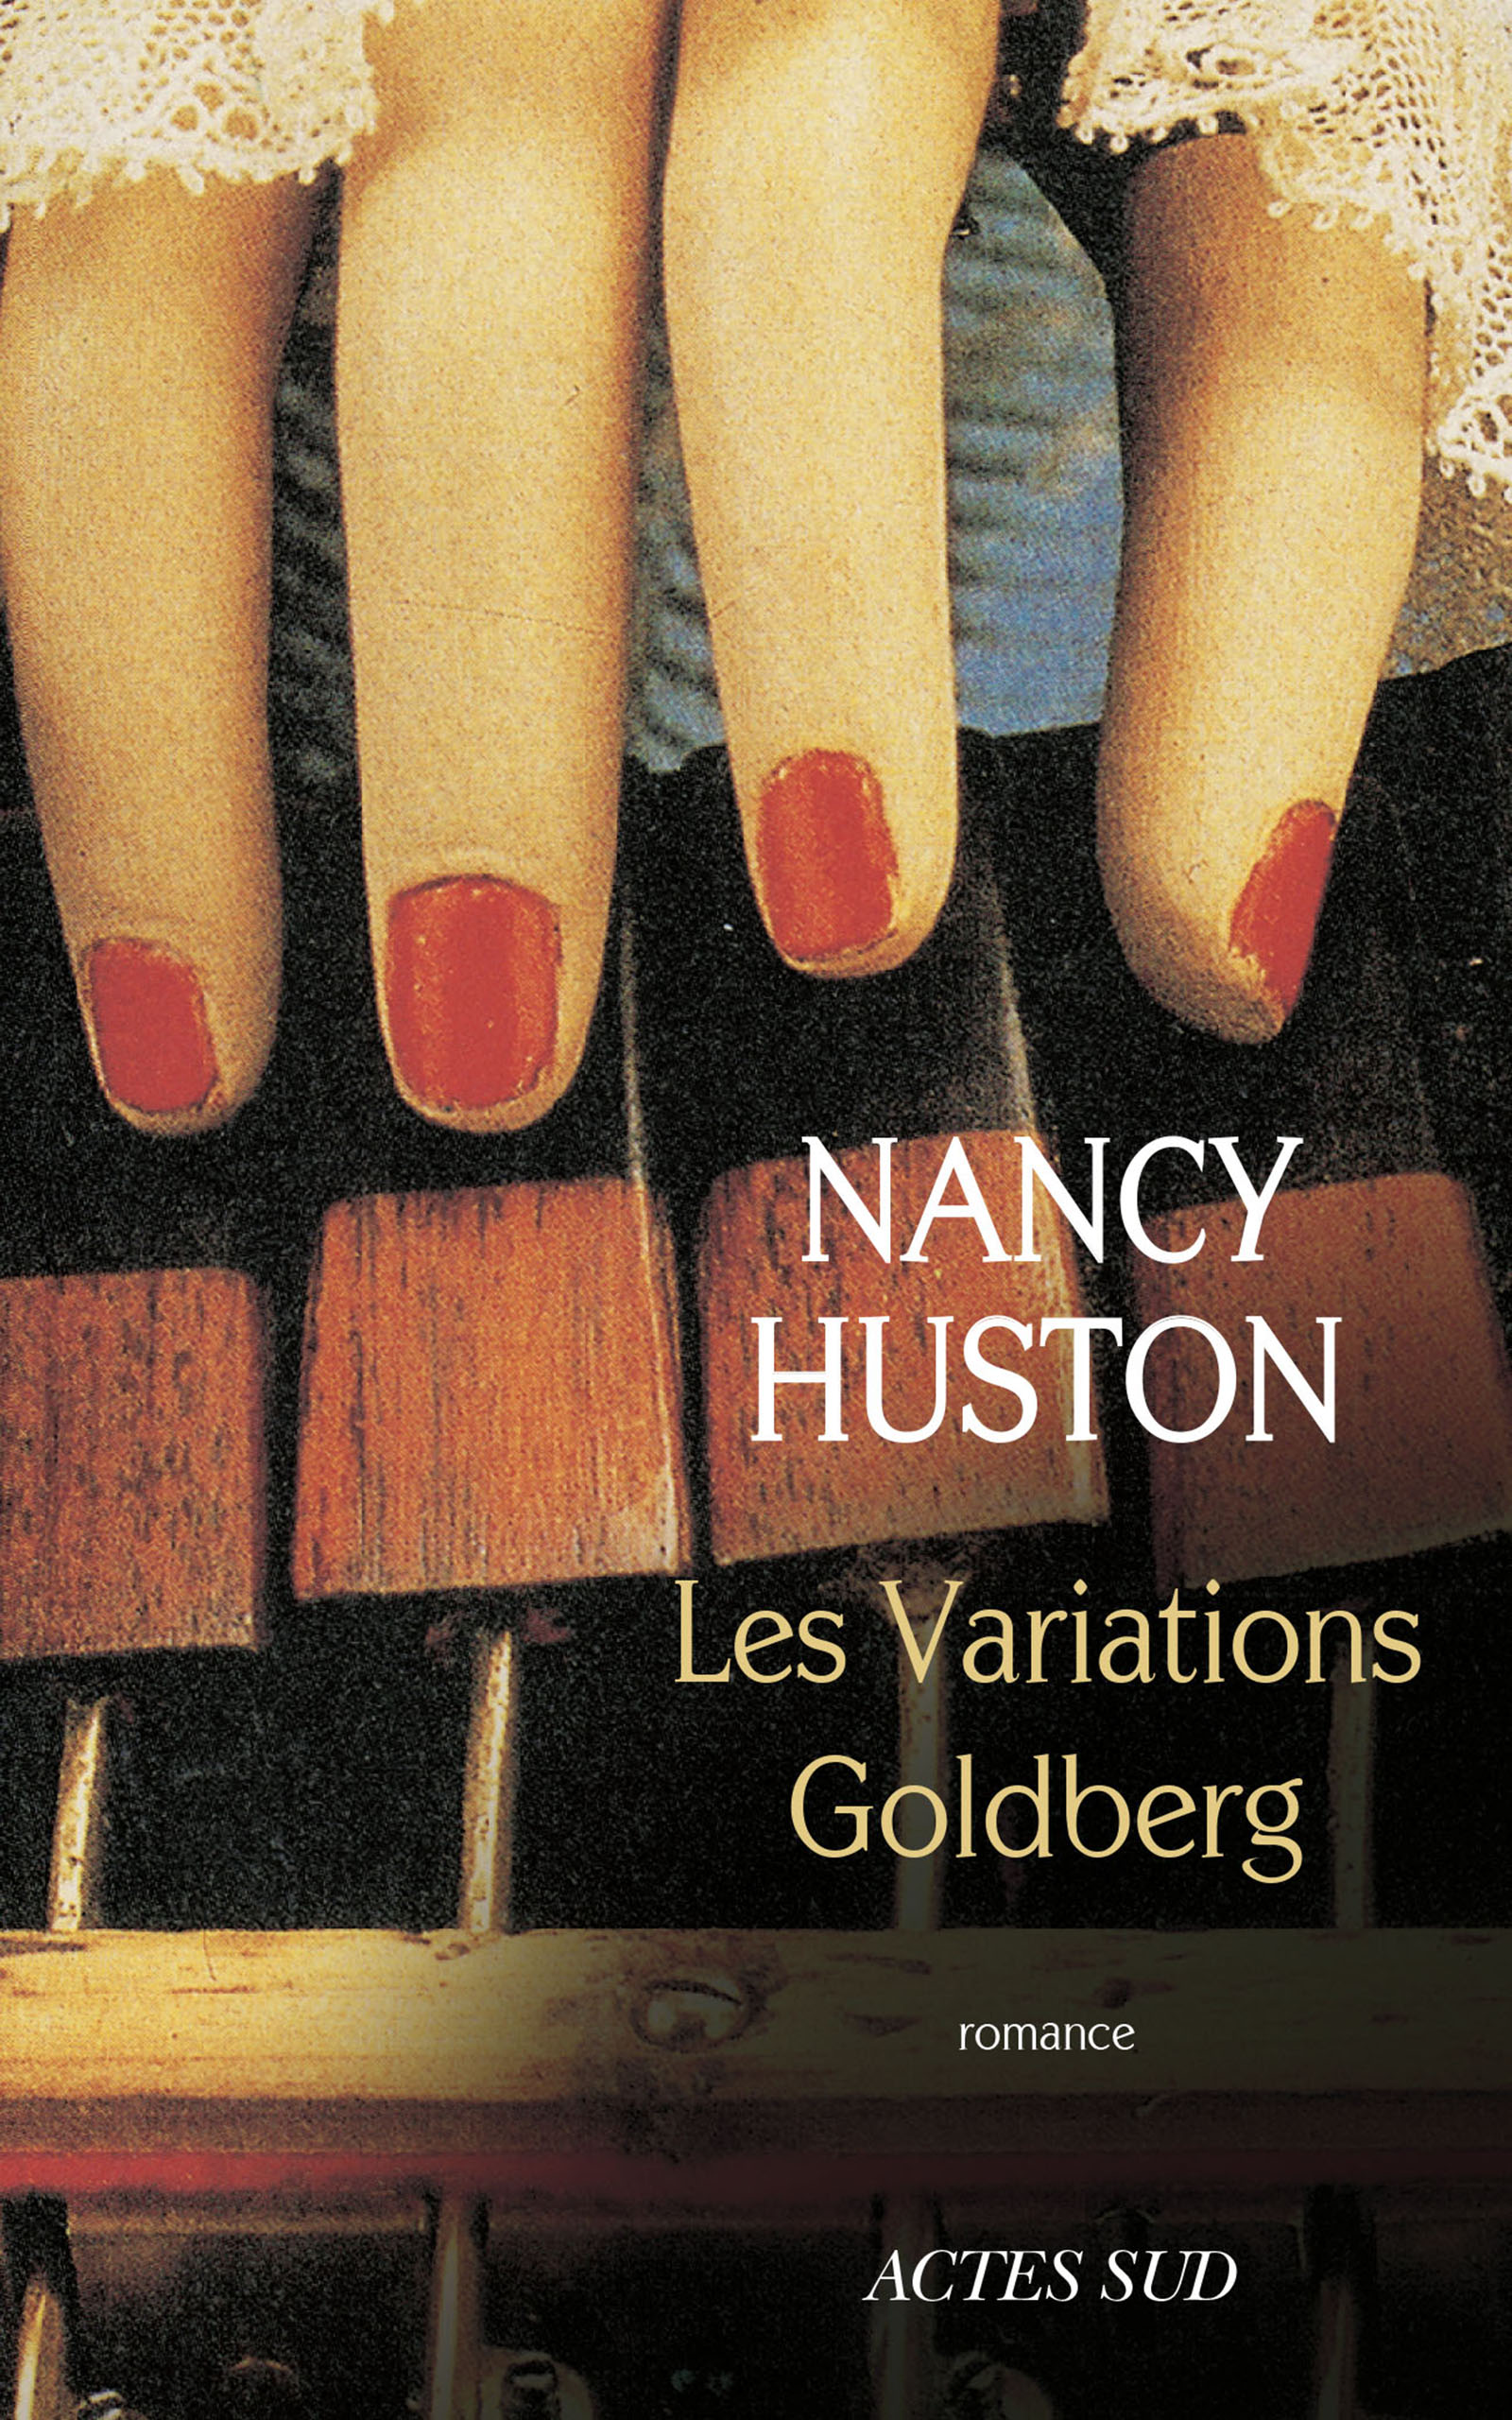 Variations Goldberg (Les) - Nancy Huston